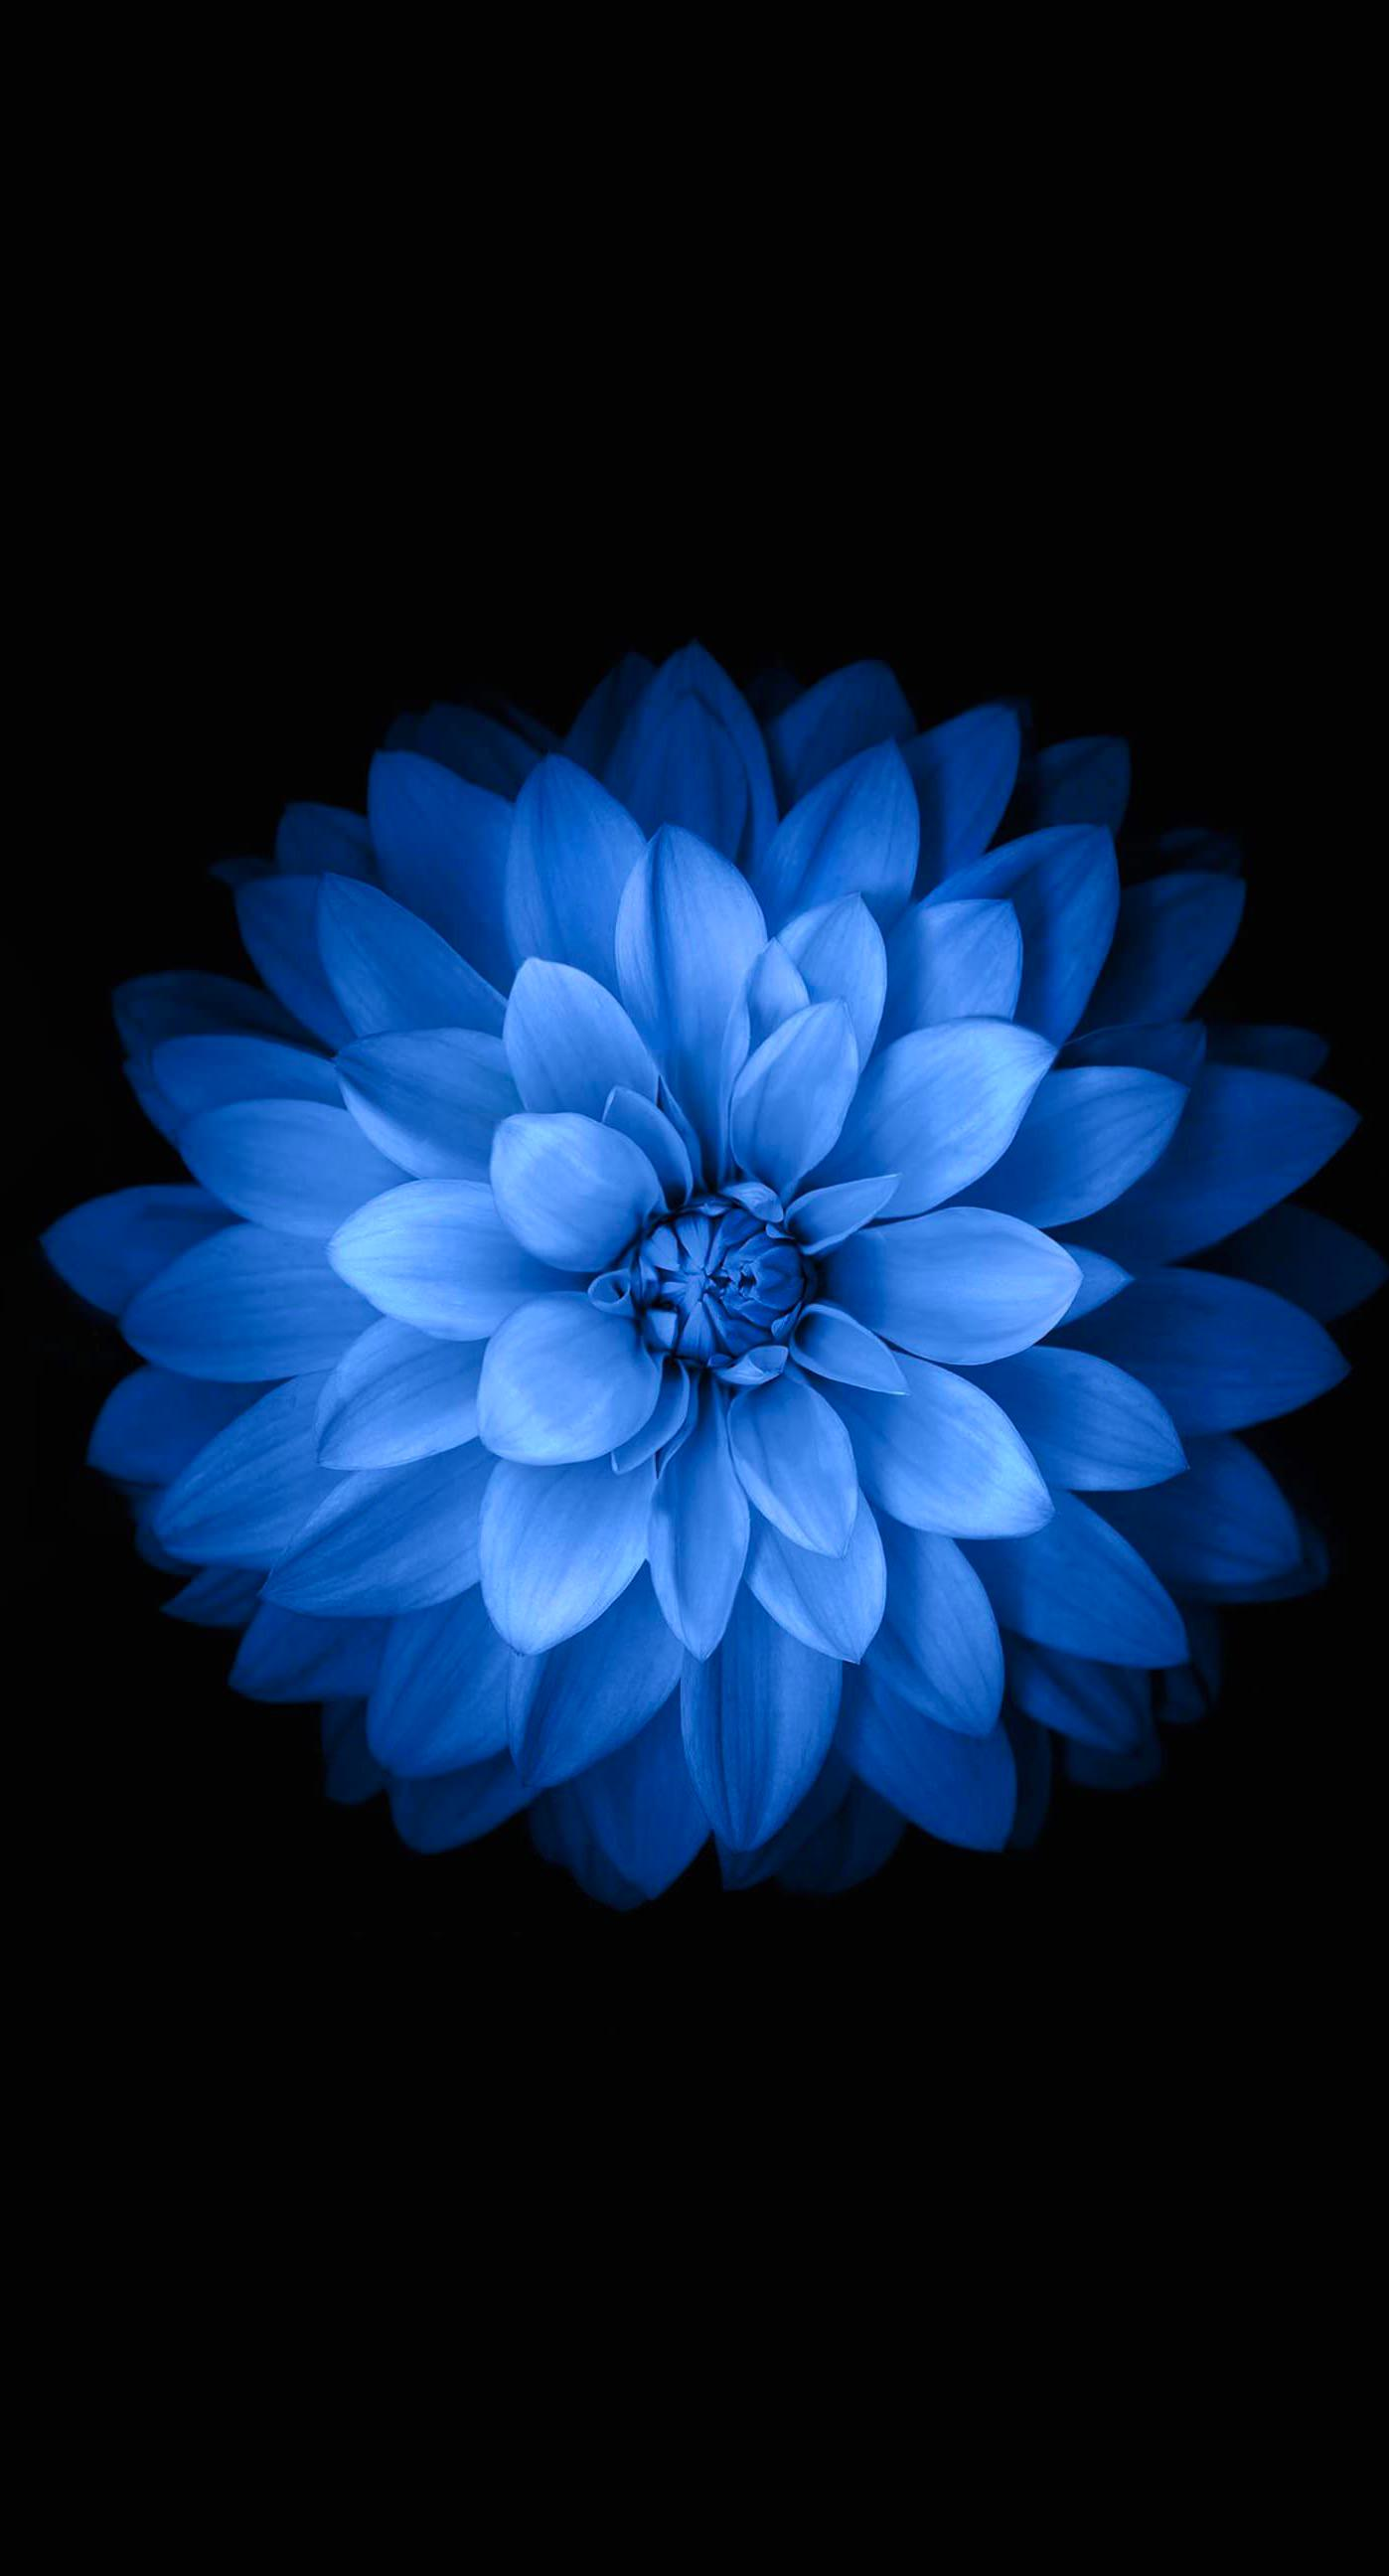 Blue black flower